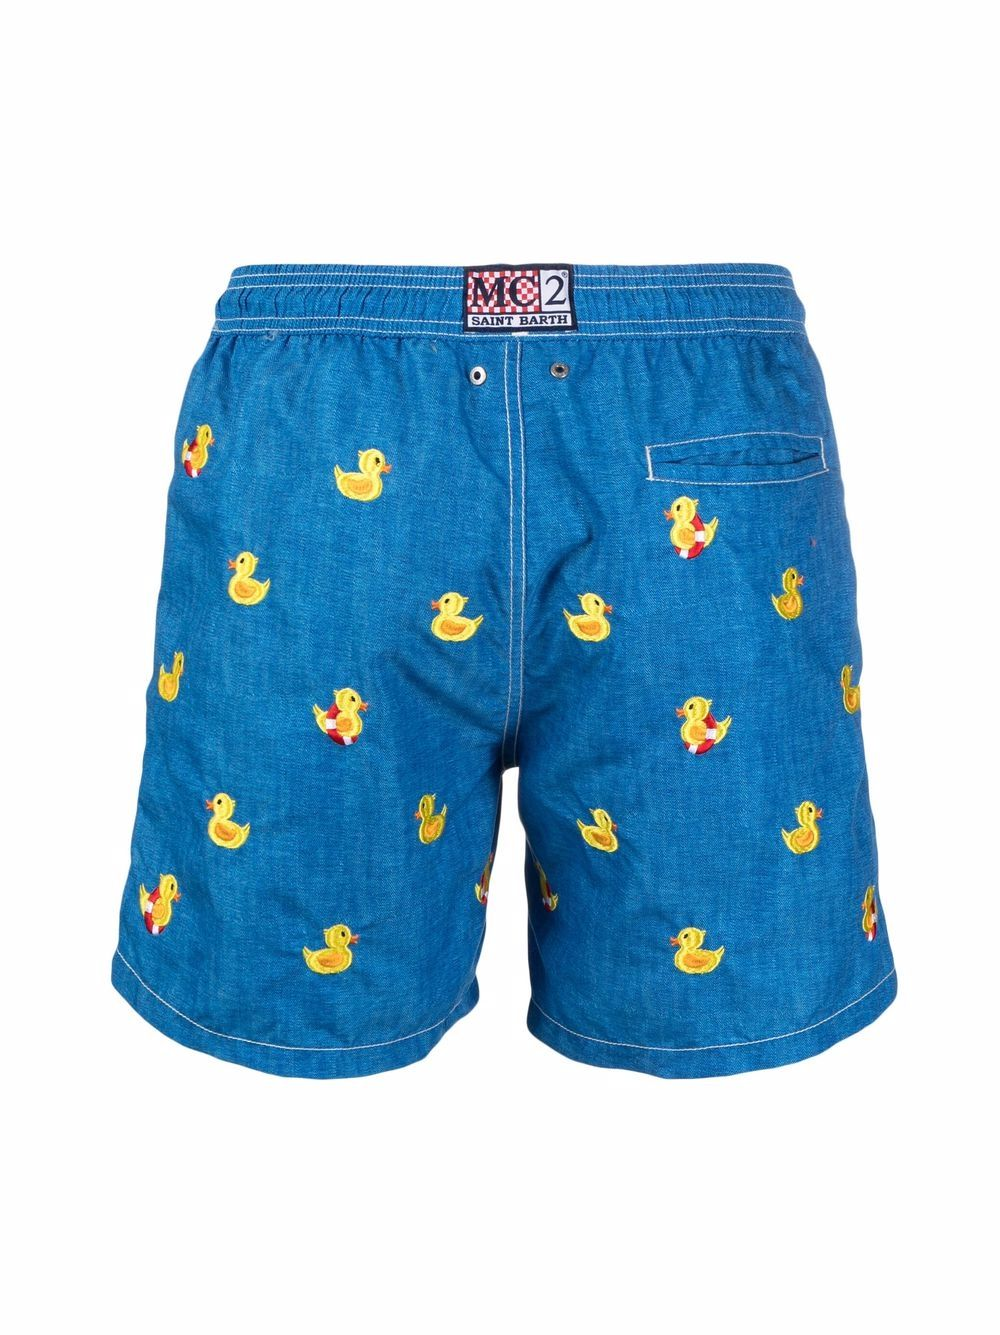 Navy blue and yellow embroidered duck swim shorts  MC2 |  | GUSTAVIA EMBROIDERY-DUCKY DEN31